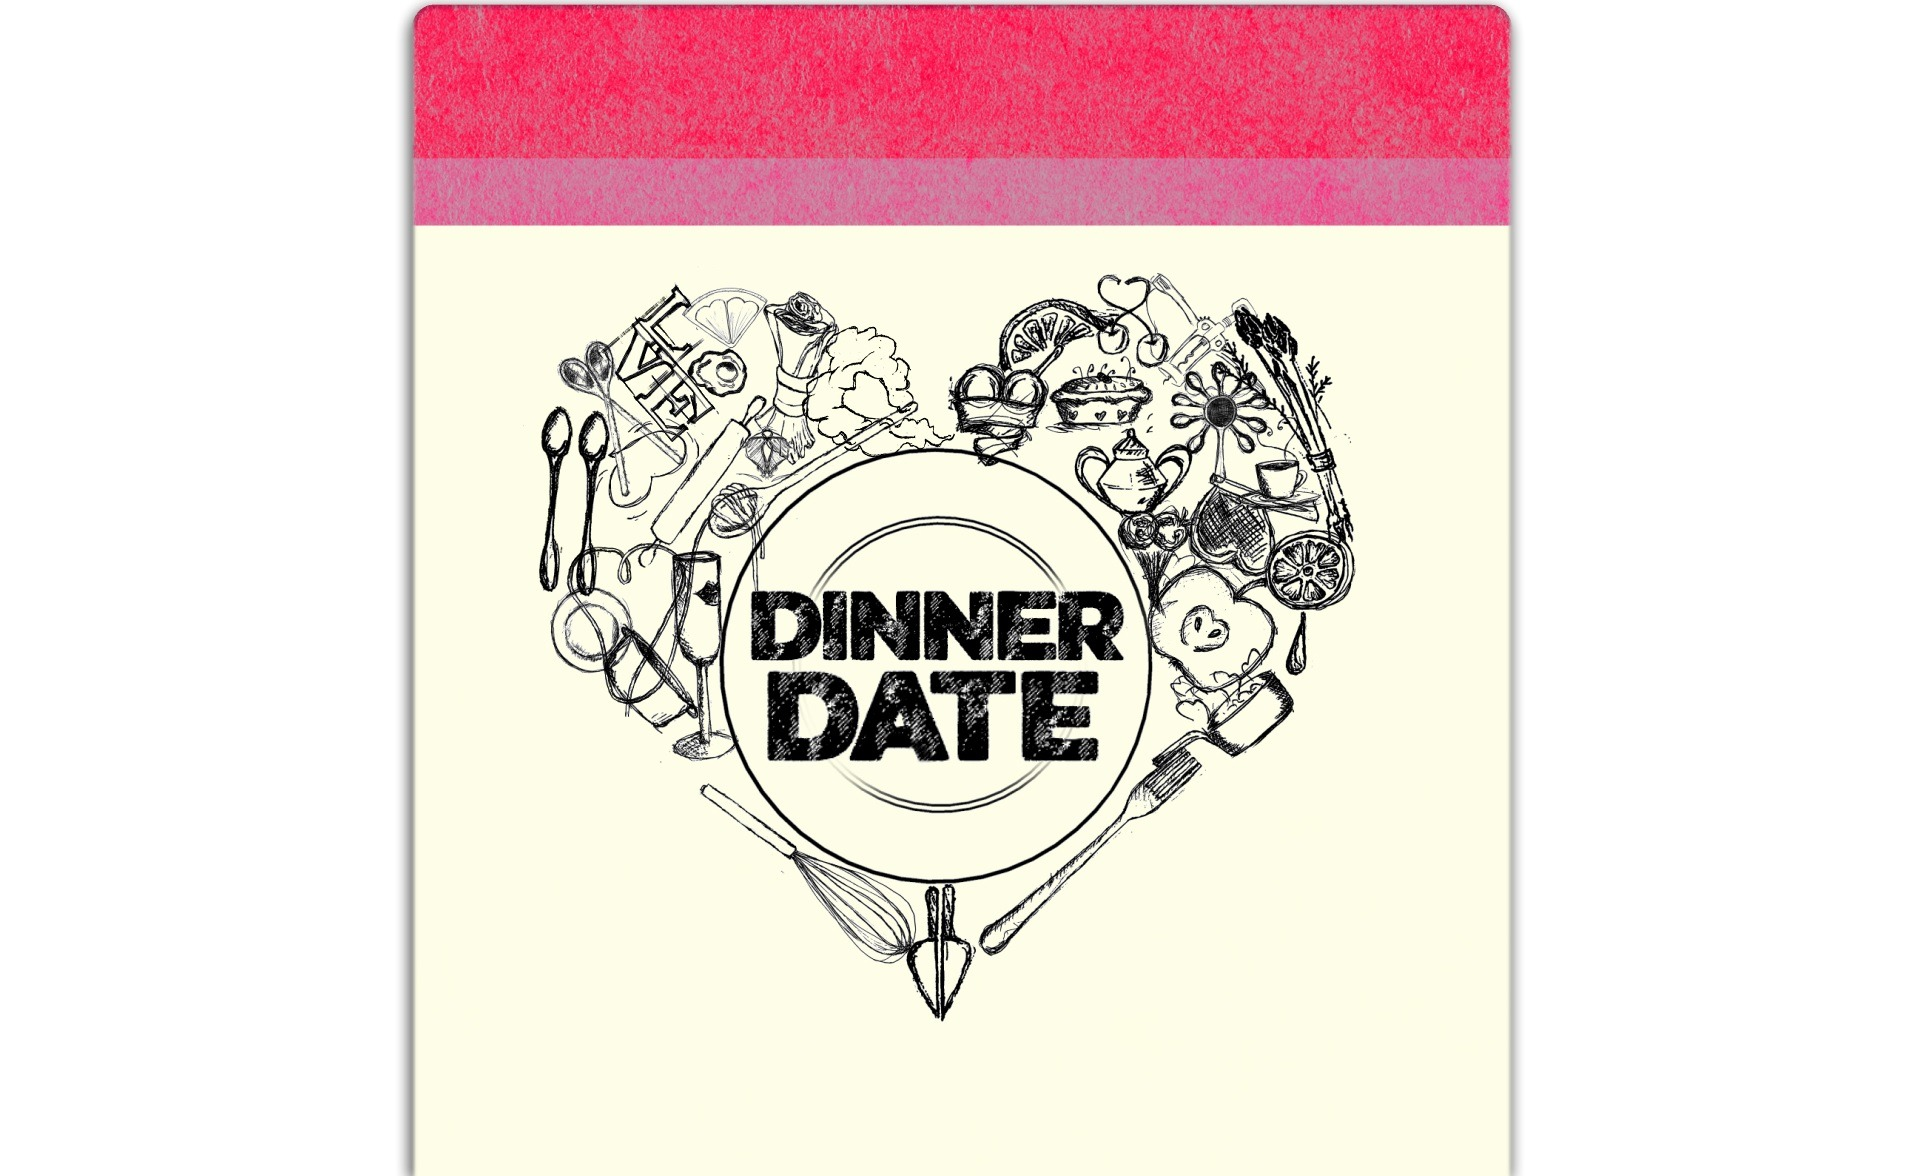 Dinner date review